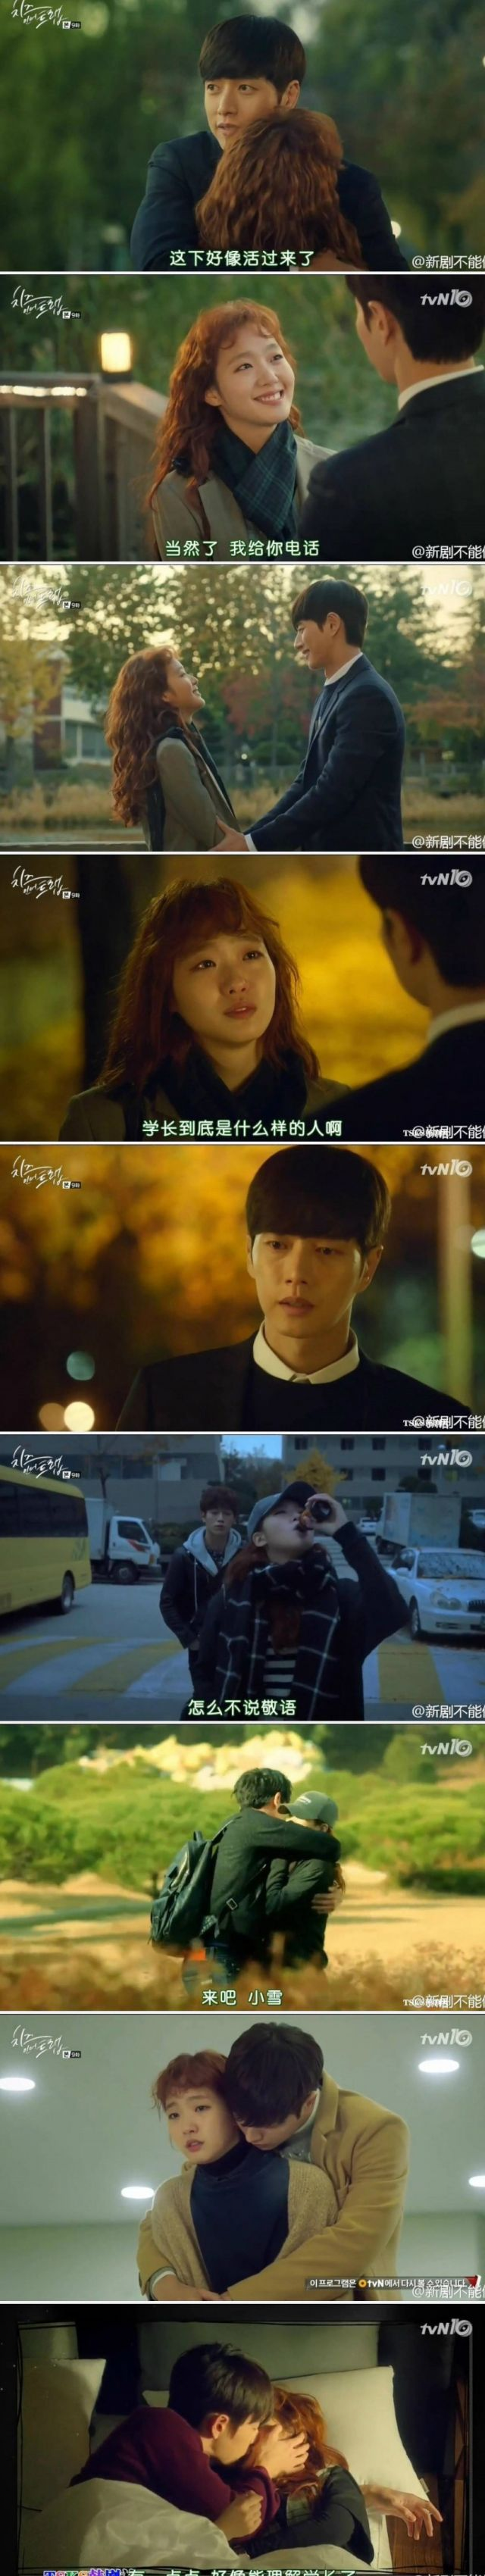 Added episode 10 captures for the Korean drama 'Cheese in the Trap'.